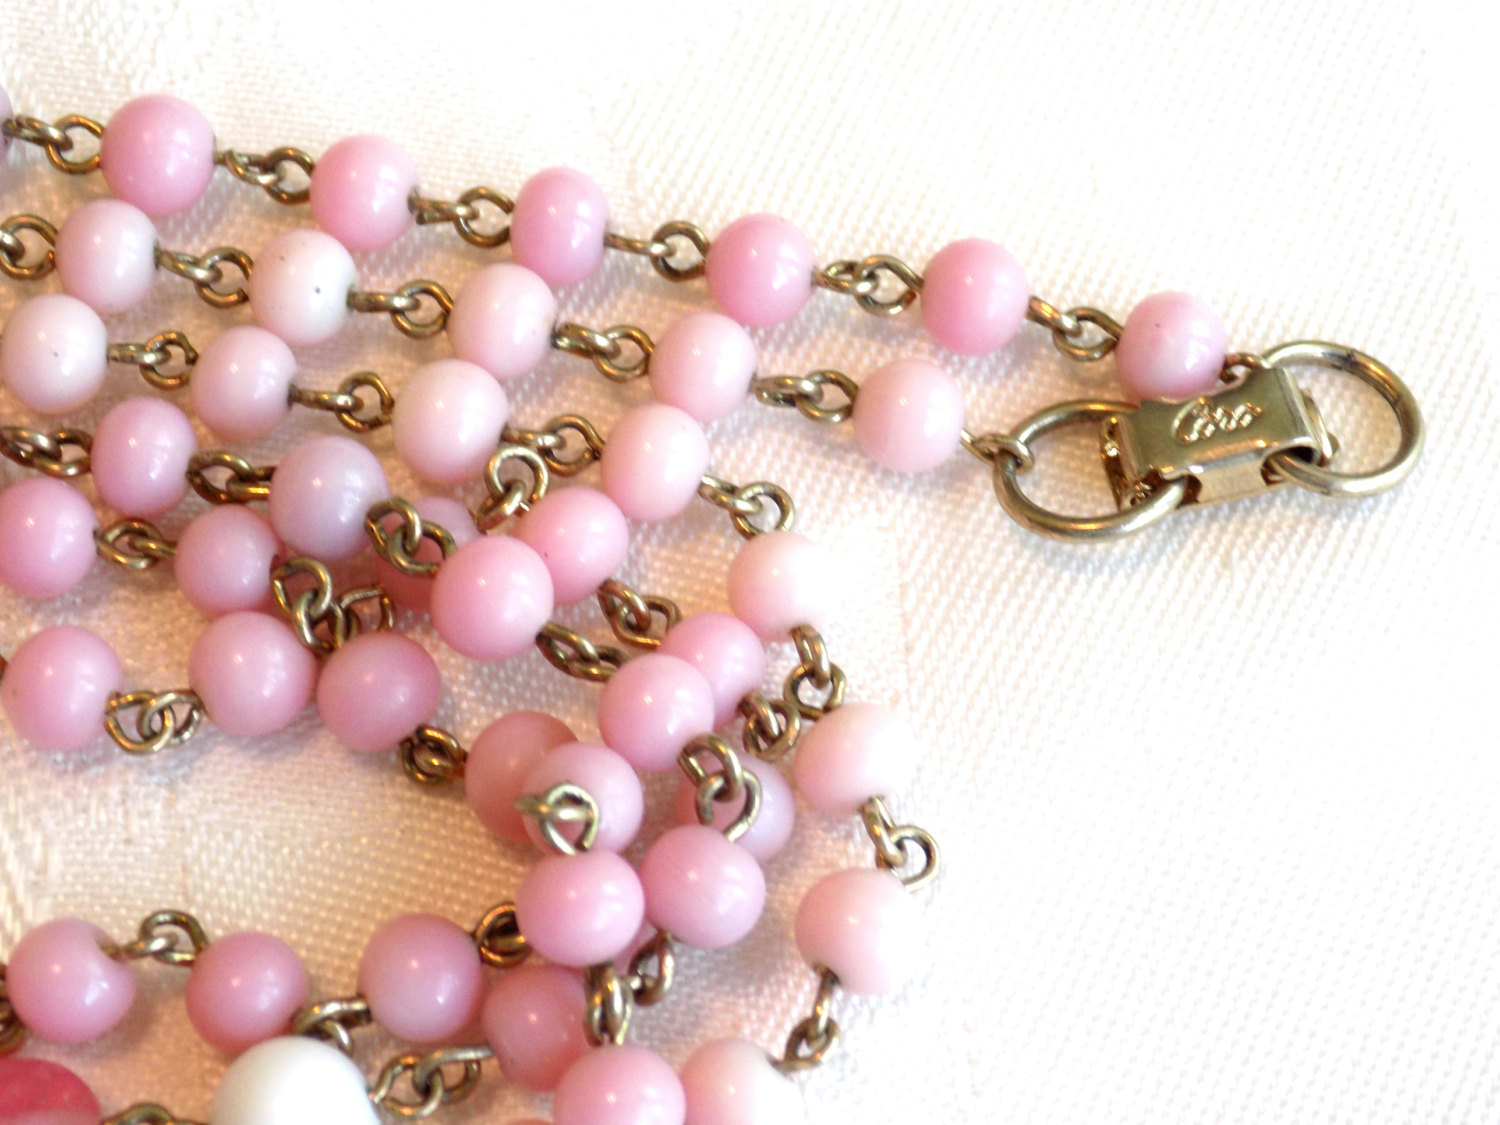 Vintage Coro Beaded Necklace Pink and White Milk Glass Beads and Swirled Pink Gl image 5